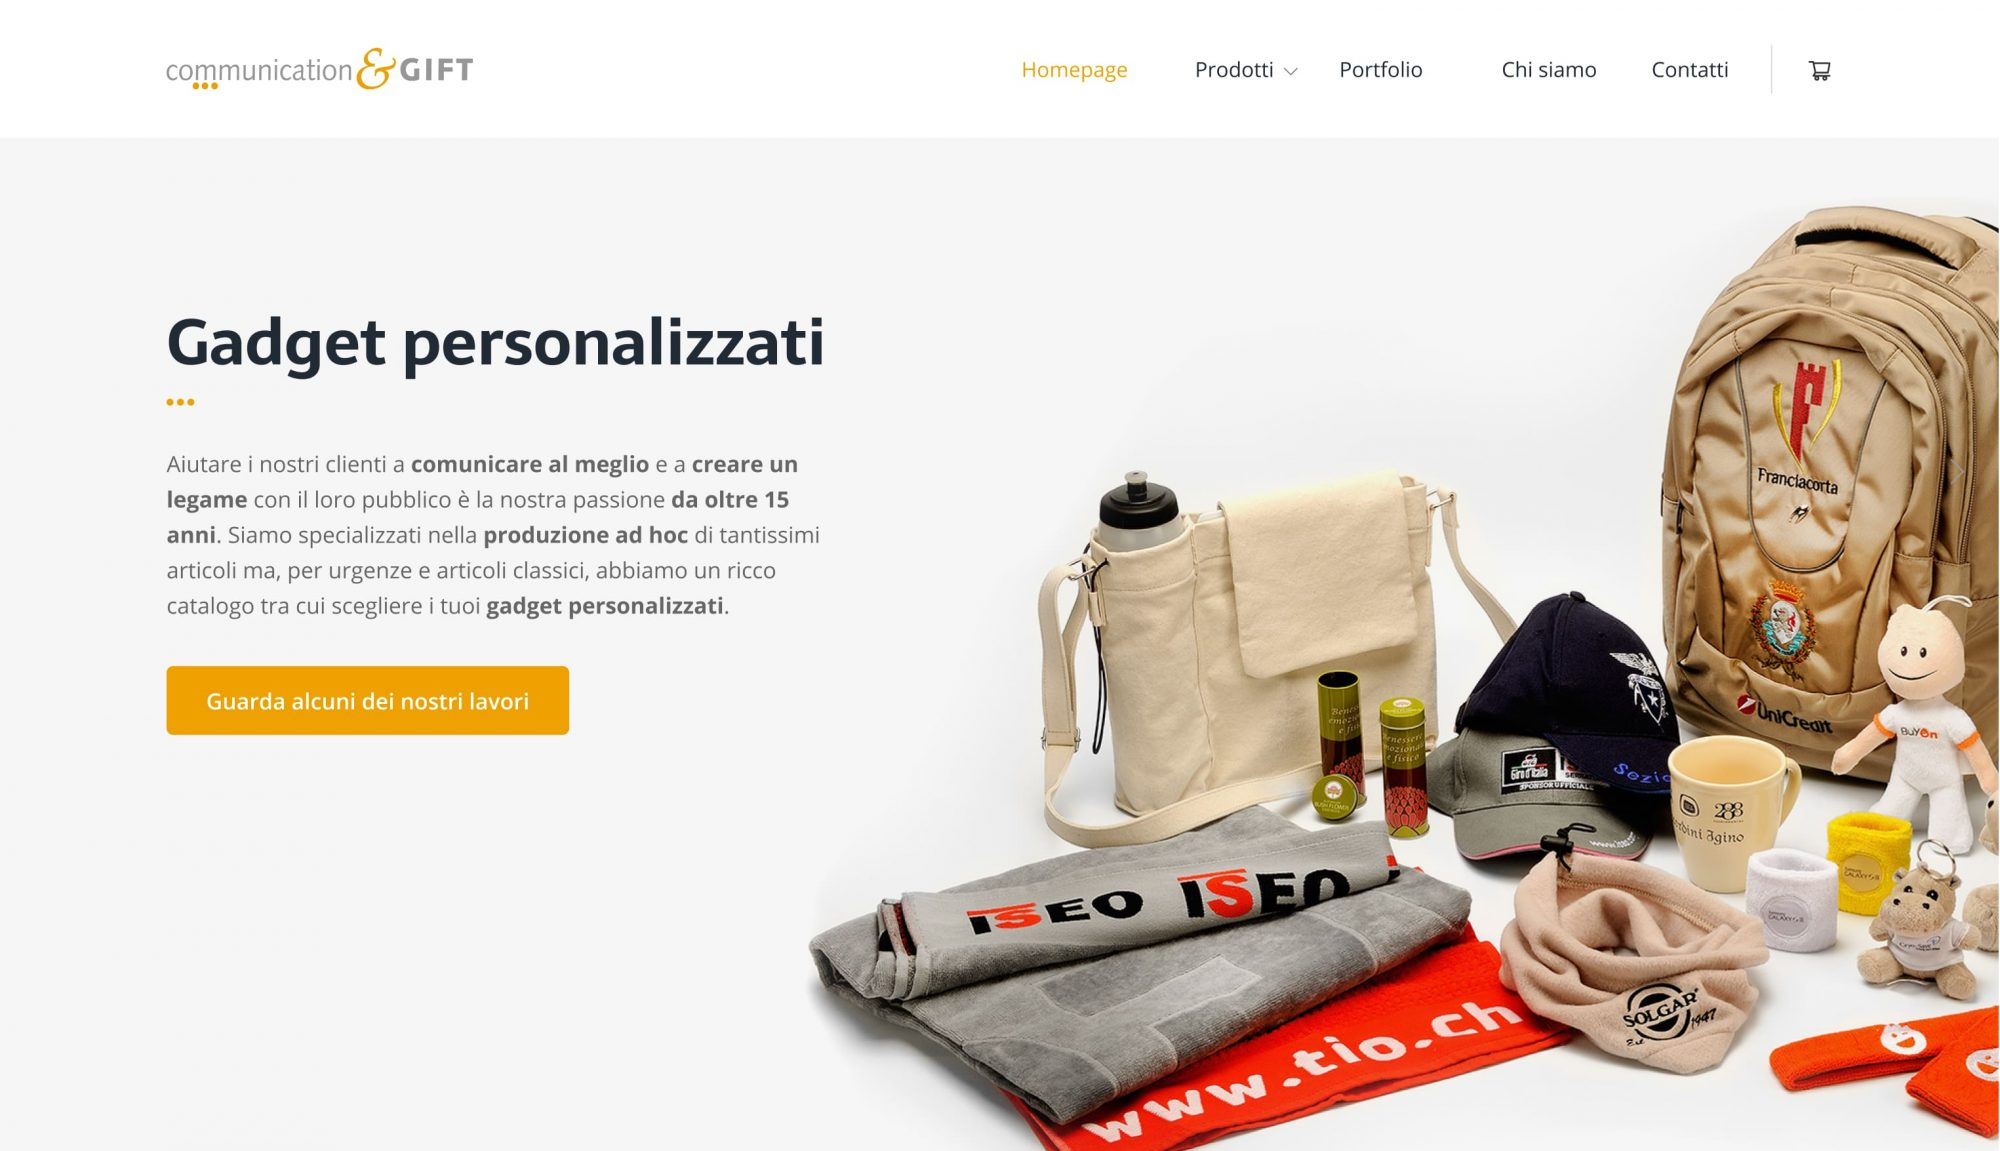 Sito web Communication & GIFT